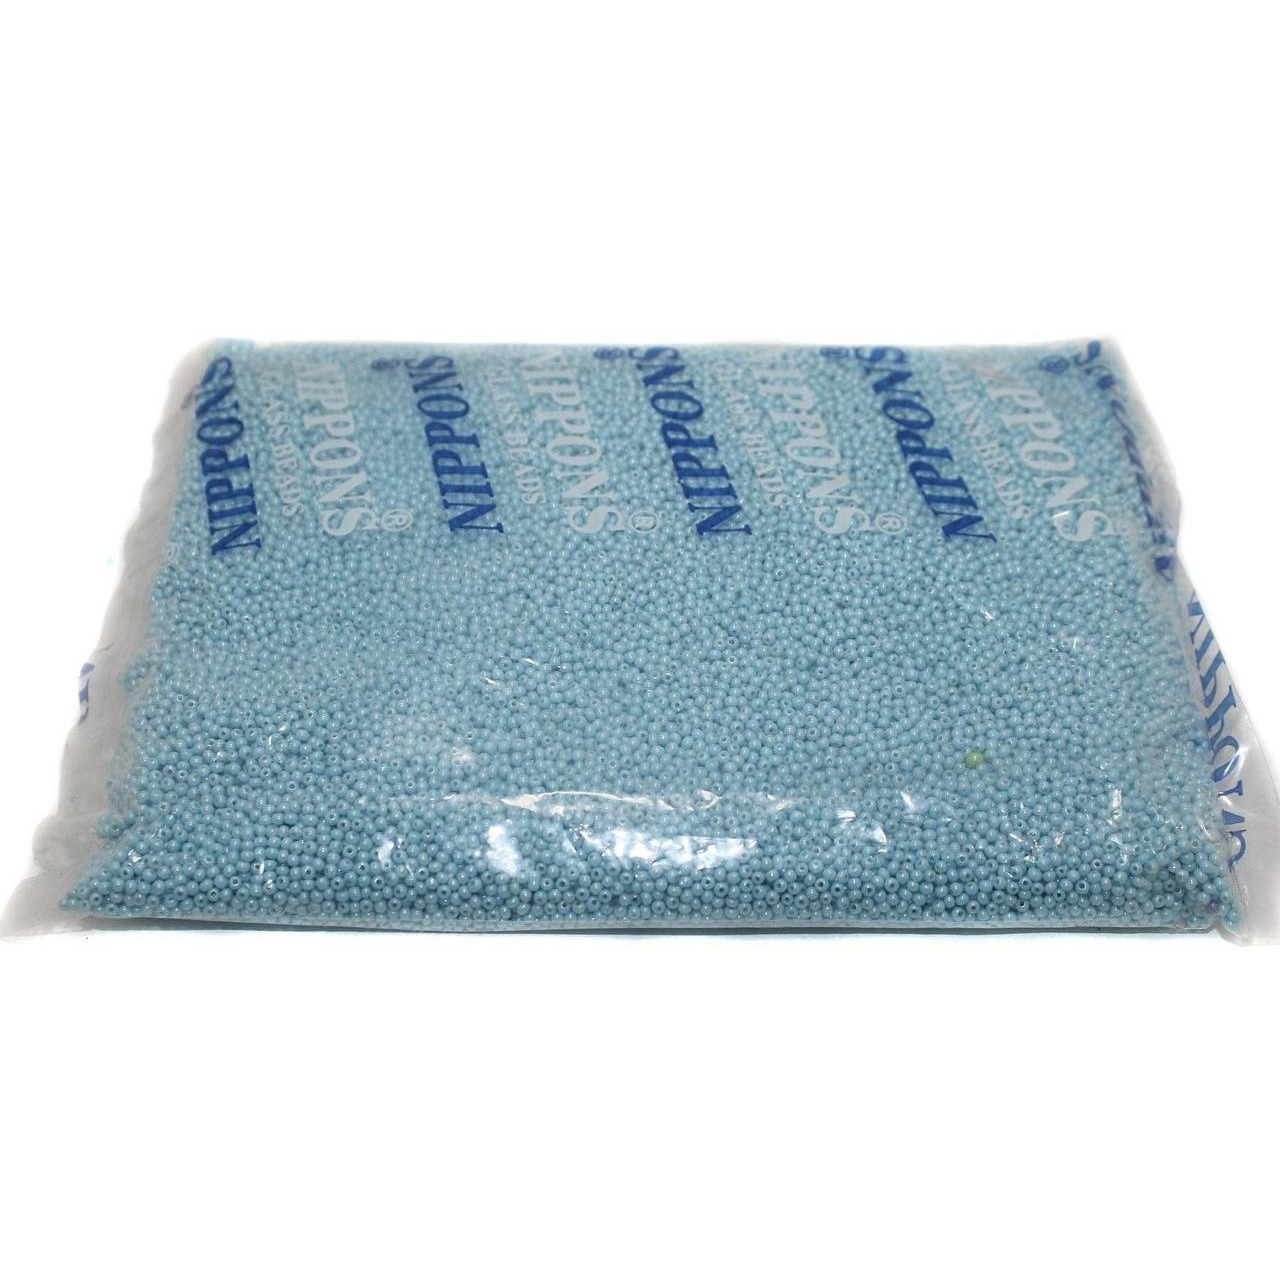 Beadsnfashion Jewellery, Embroidery & Crafts Nippon Seed Beads Sky Blue Opaque Luster 11/0, Pack OF 500 Gm